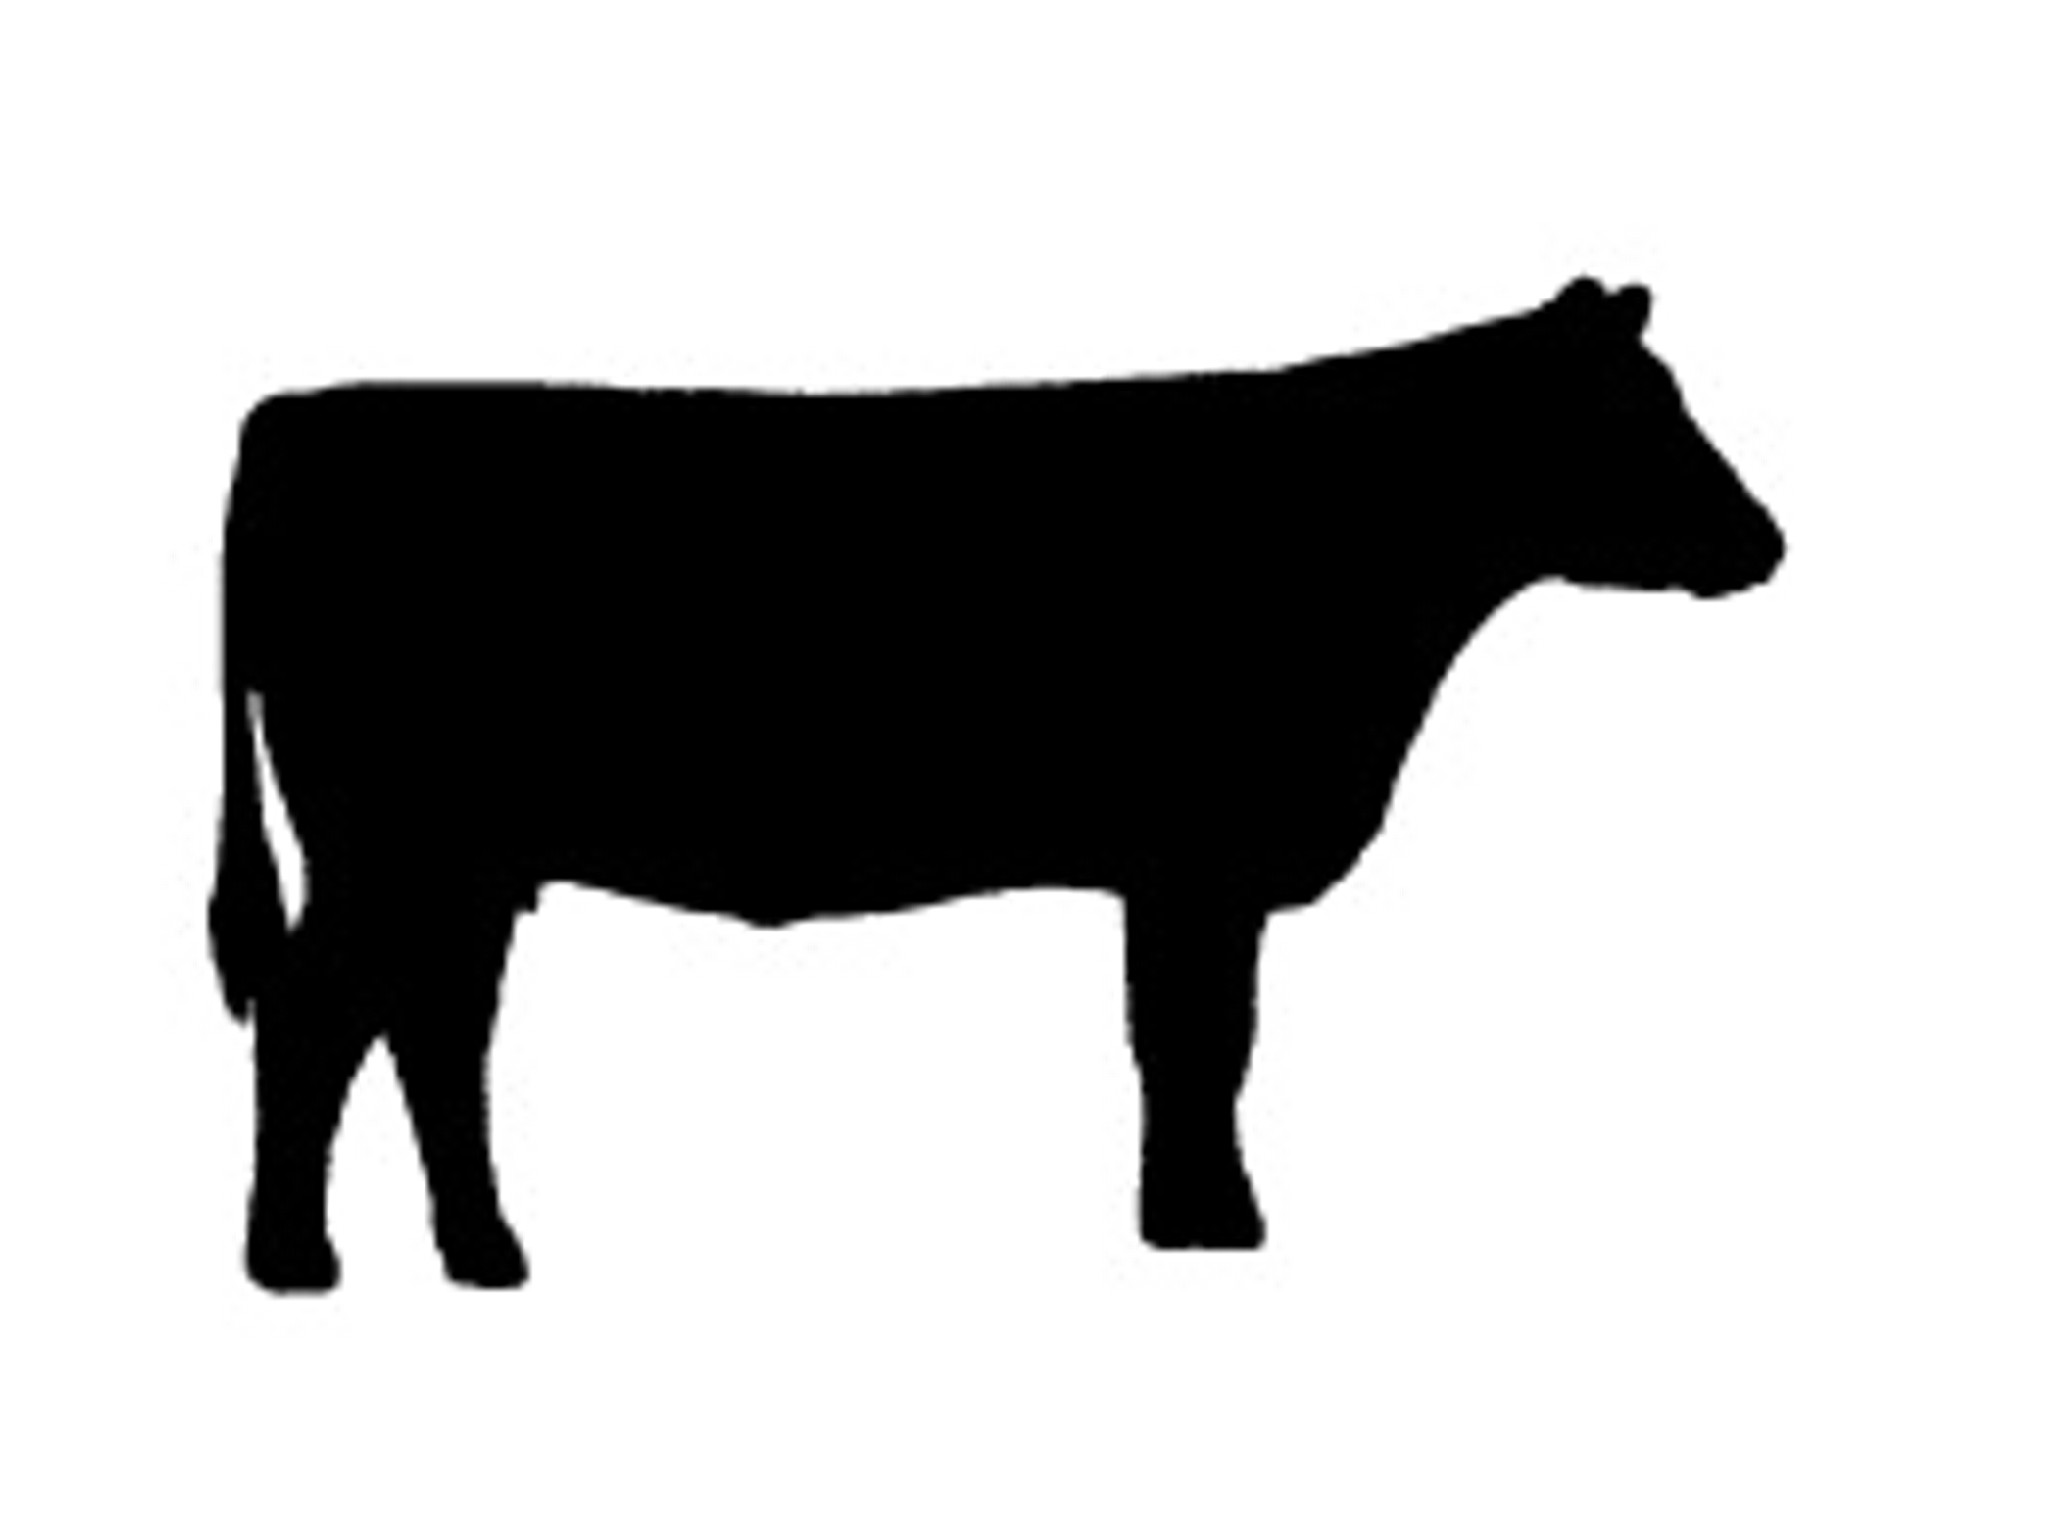 Cattle Silhouette Clipart - Clipart Suggest